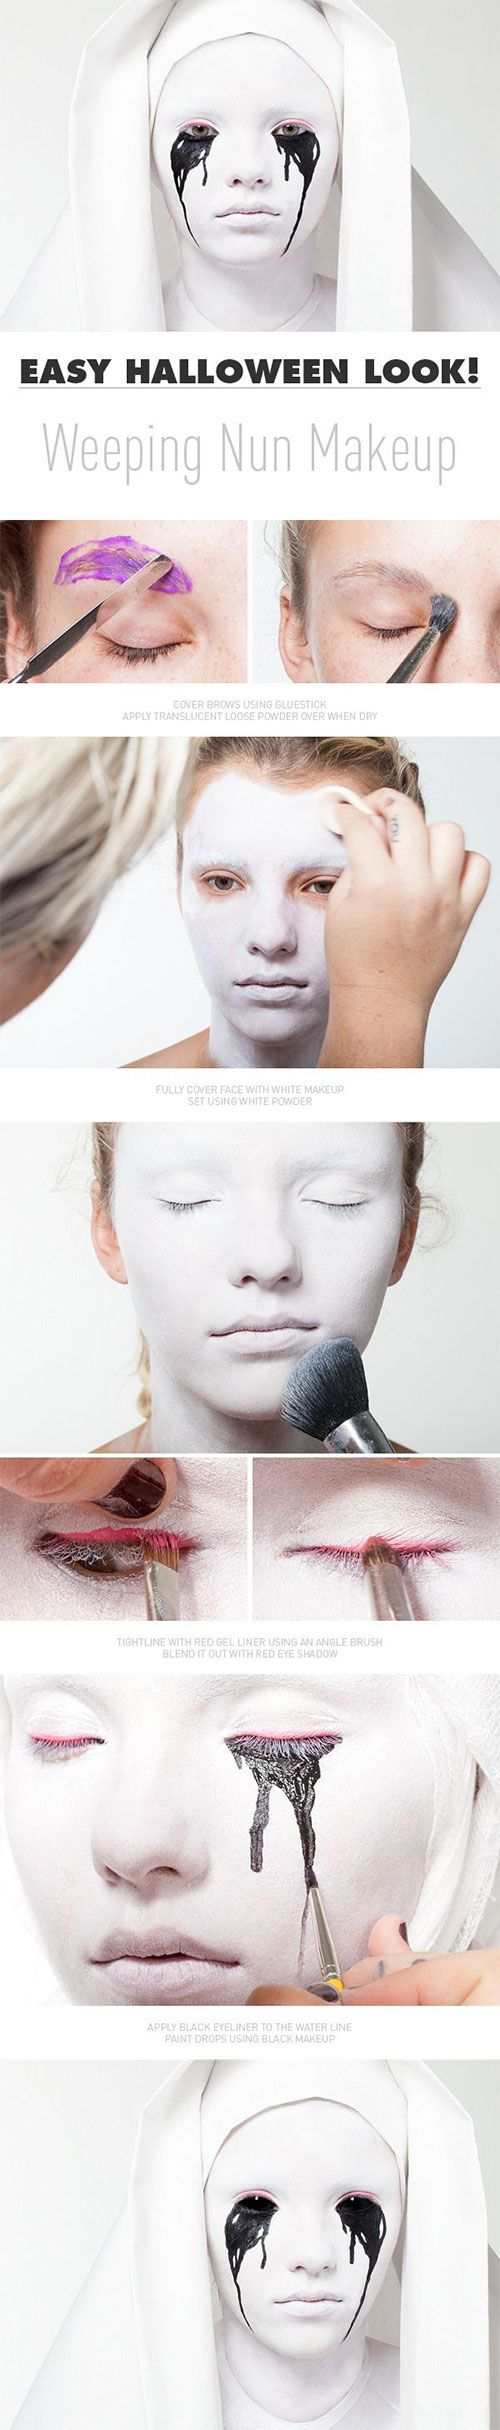 15-Step-By-Step-Halloween-Make-Up-Tutorials-For-Beginners-Learners-2014-13